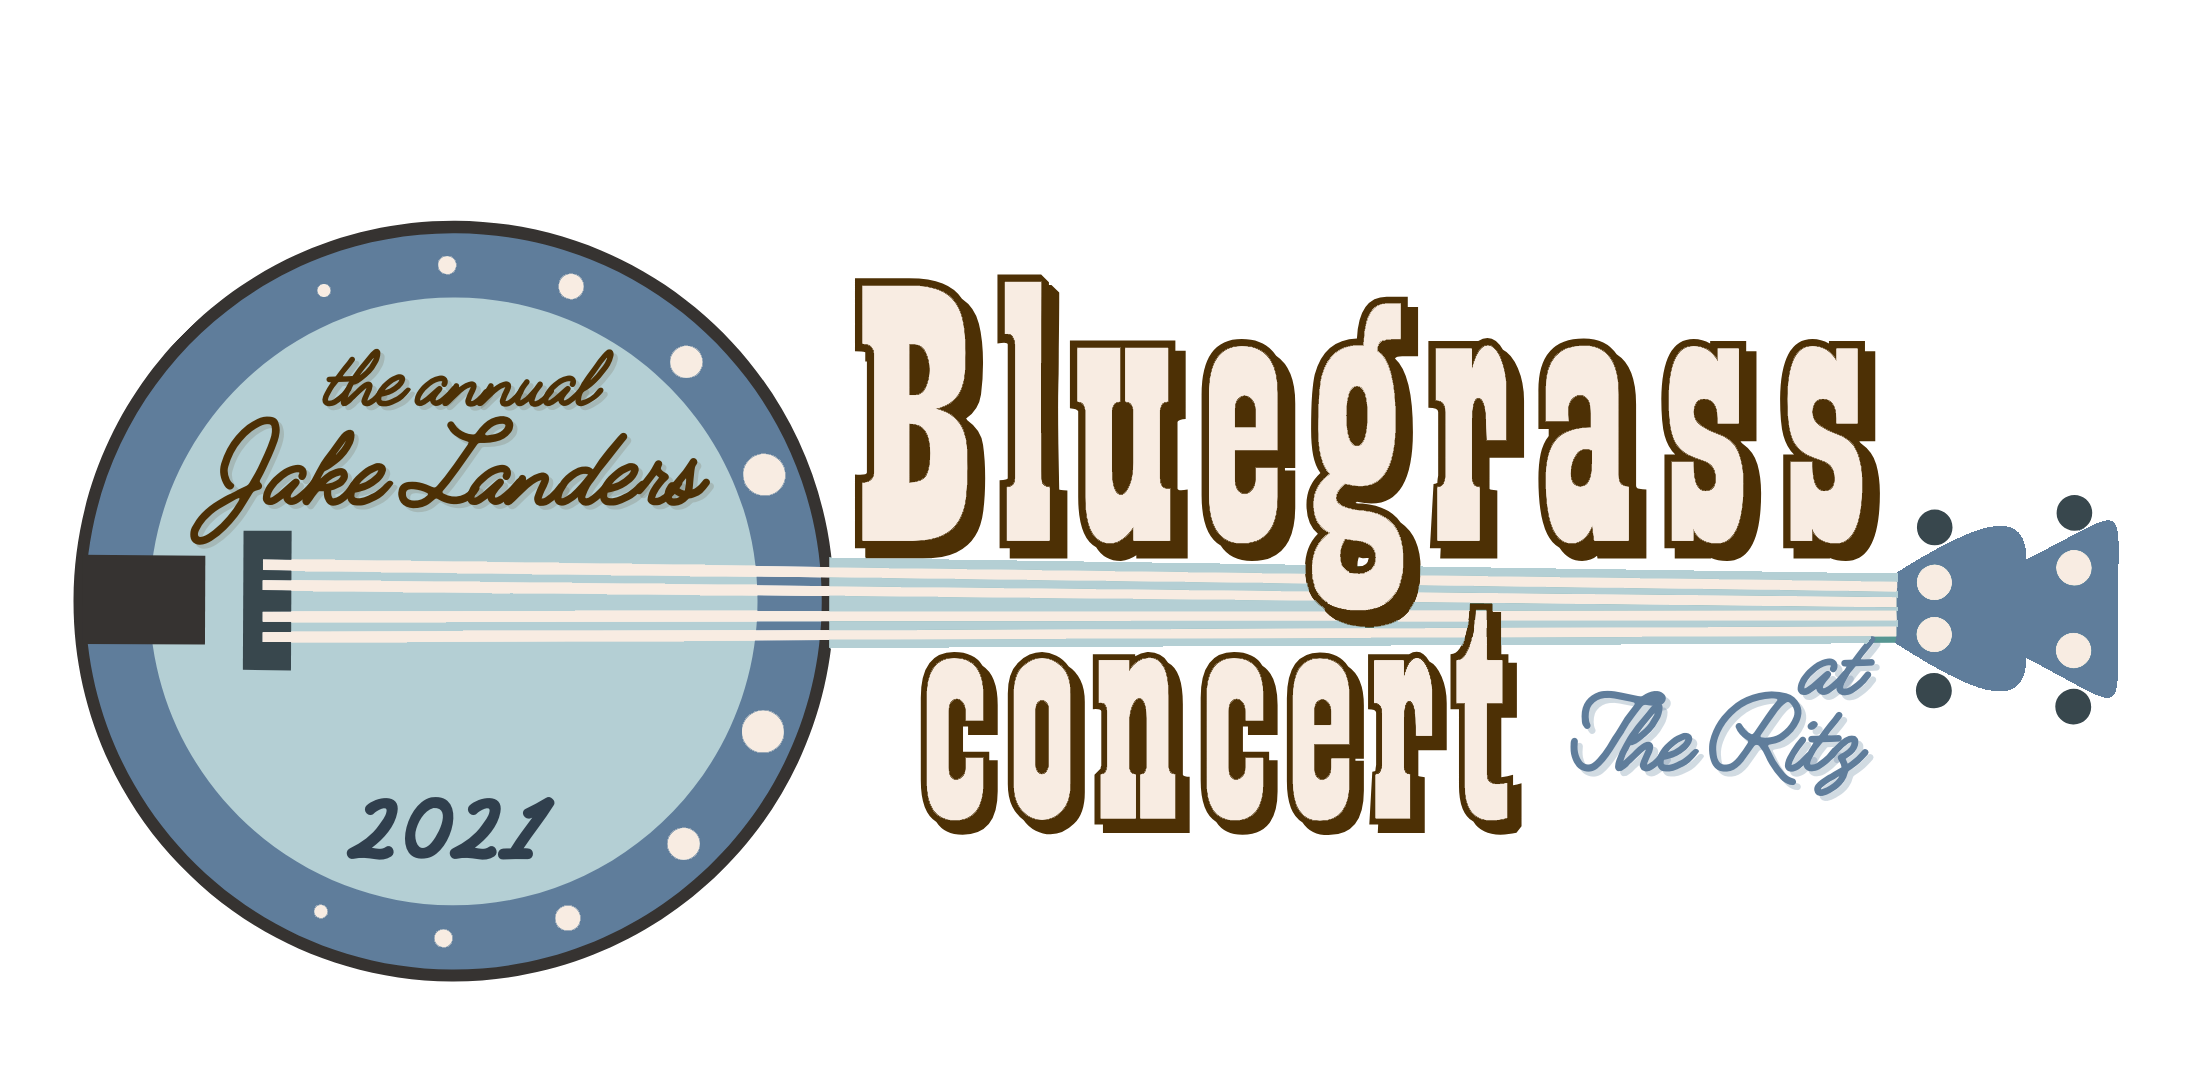 The Annual Jake Landers Bluegrass Concert at The Ritz logo